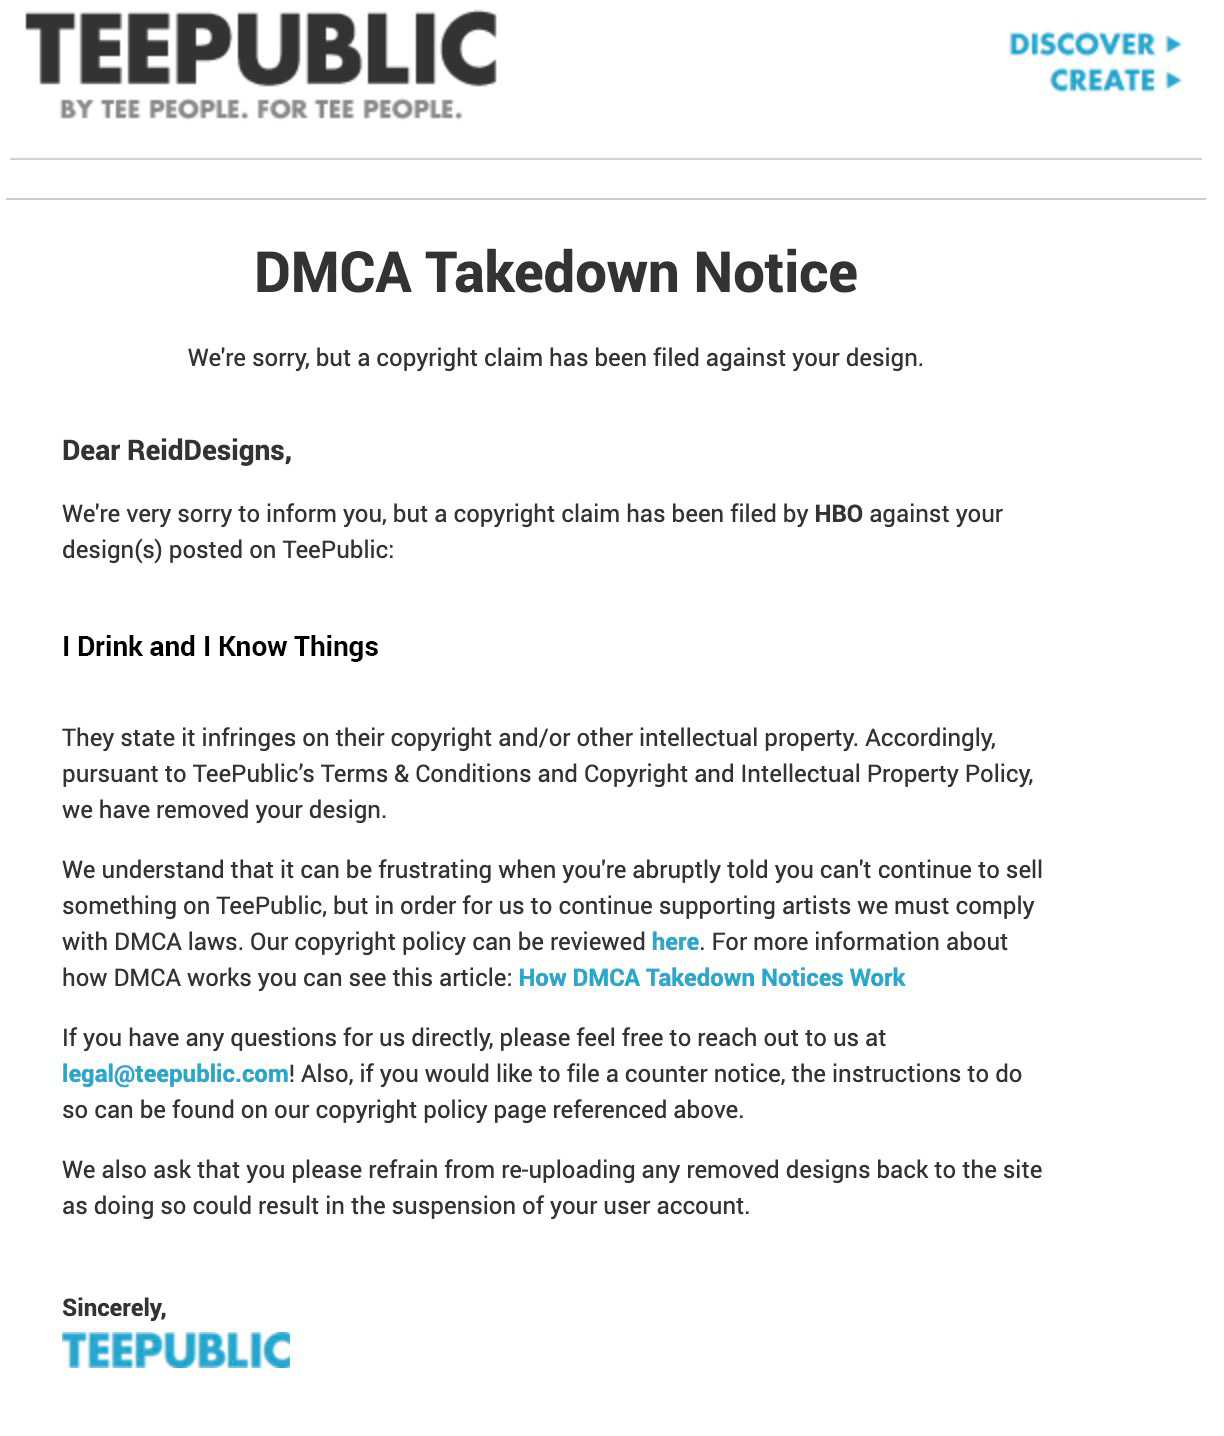 DMCA Email Letter fro Teepublic.com